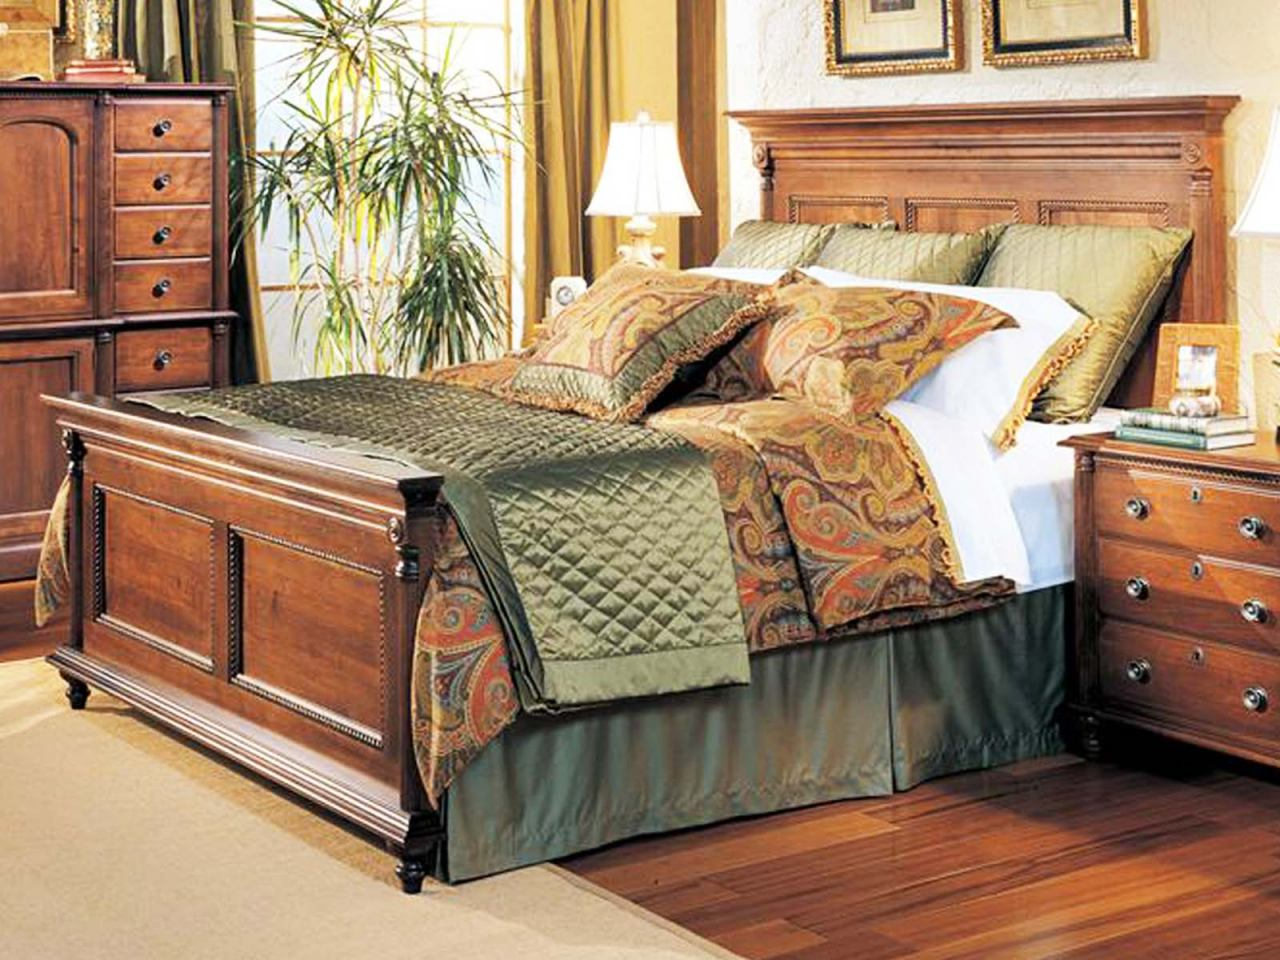 Durham Furniture Savile Row Queen Panel Bed - Victorian Mahogany finish